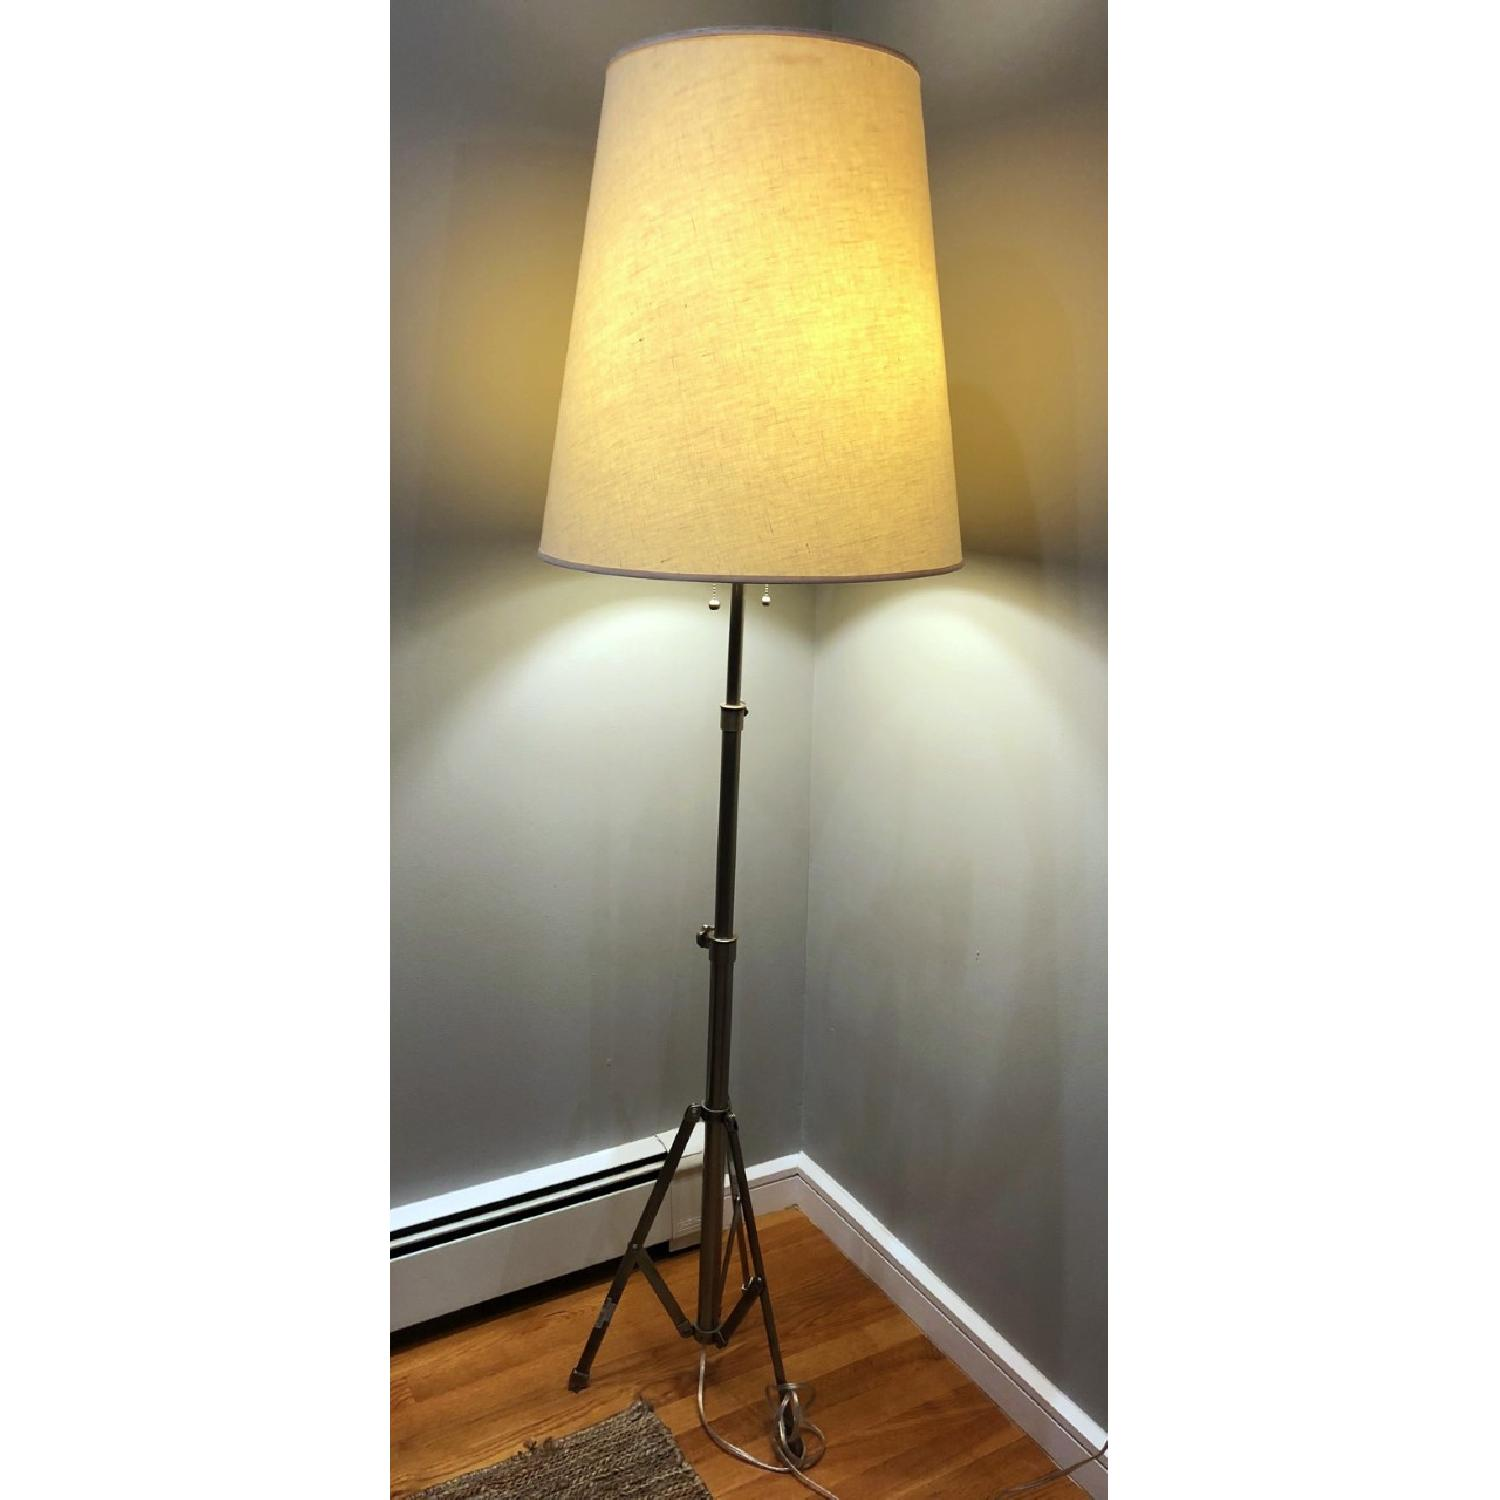 Pottery Barn Tripod Floor Lamp-0